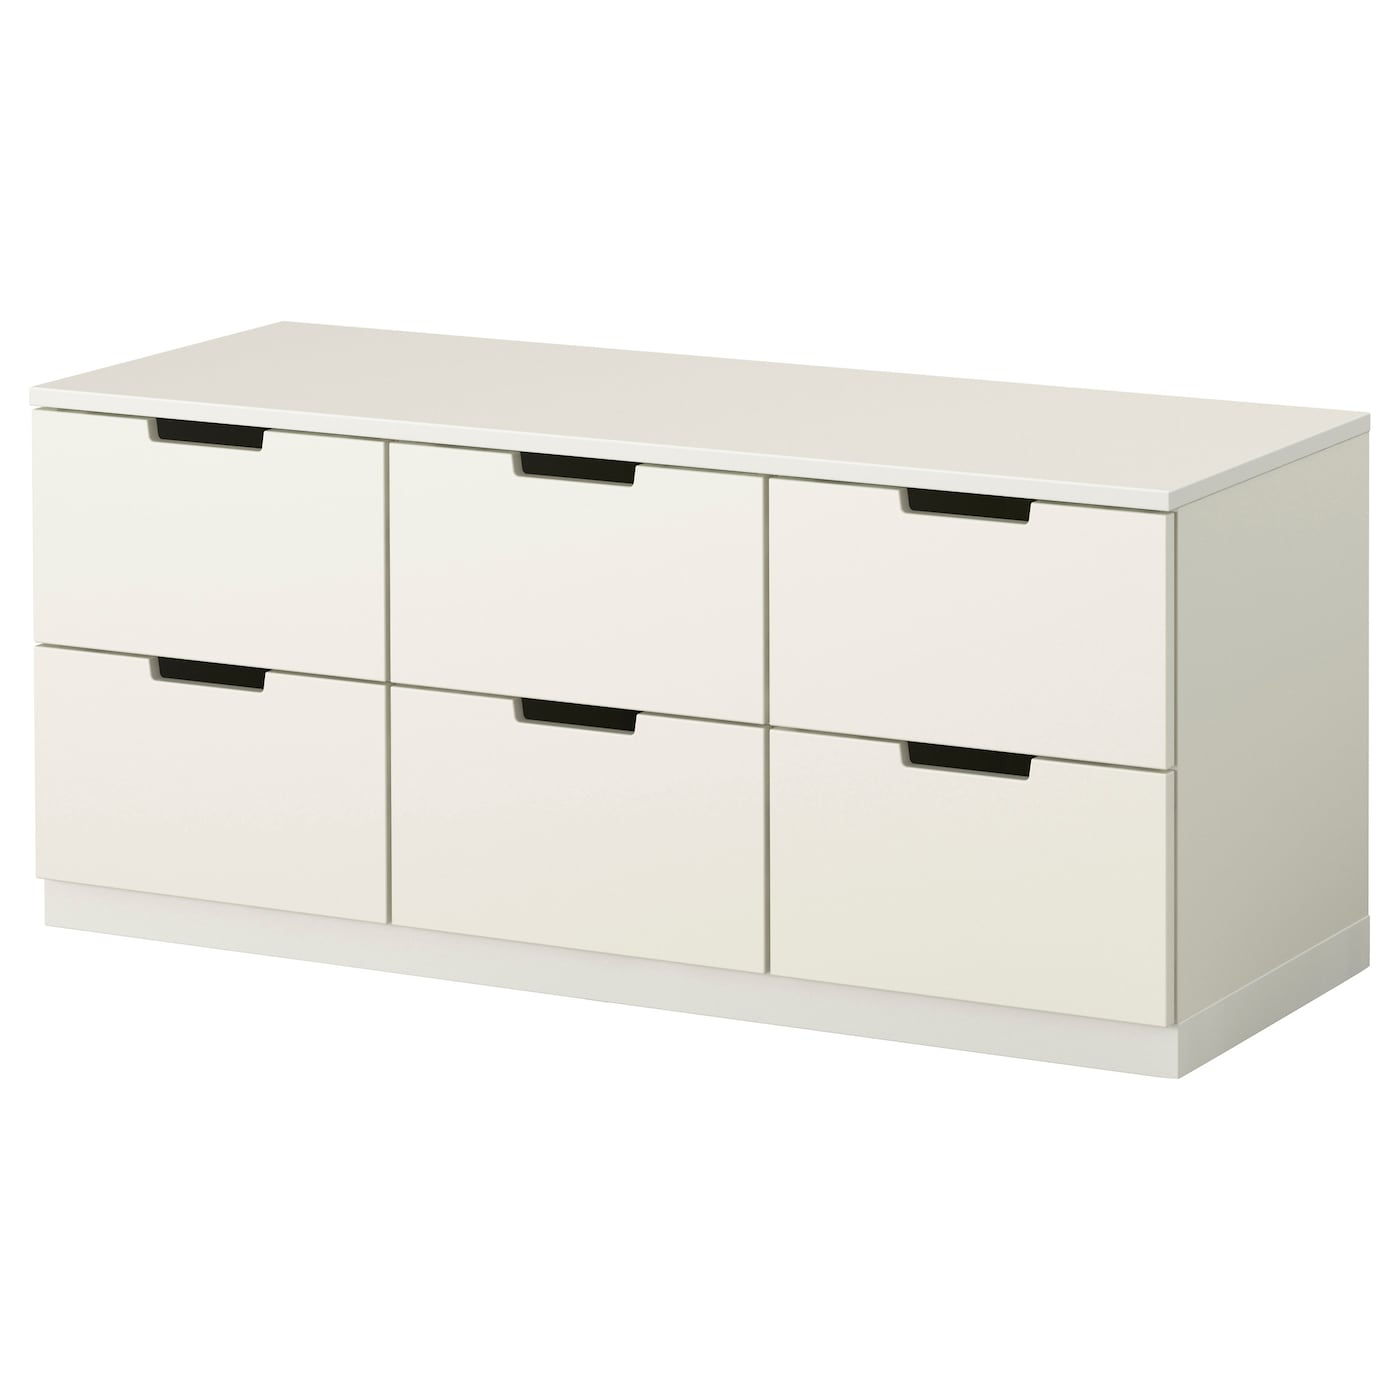 Dresser Drawer Depth BestDressers 2017